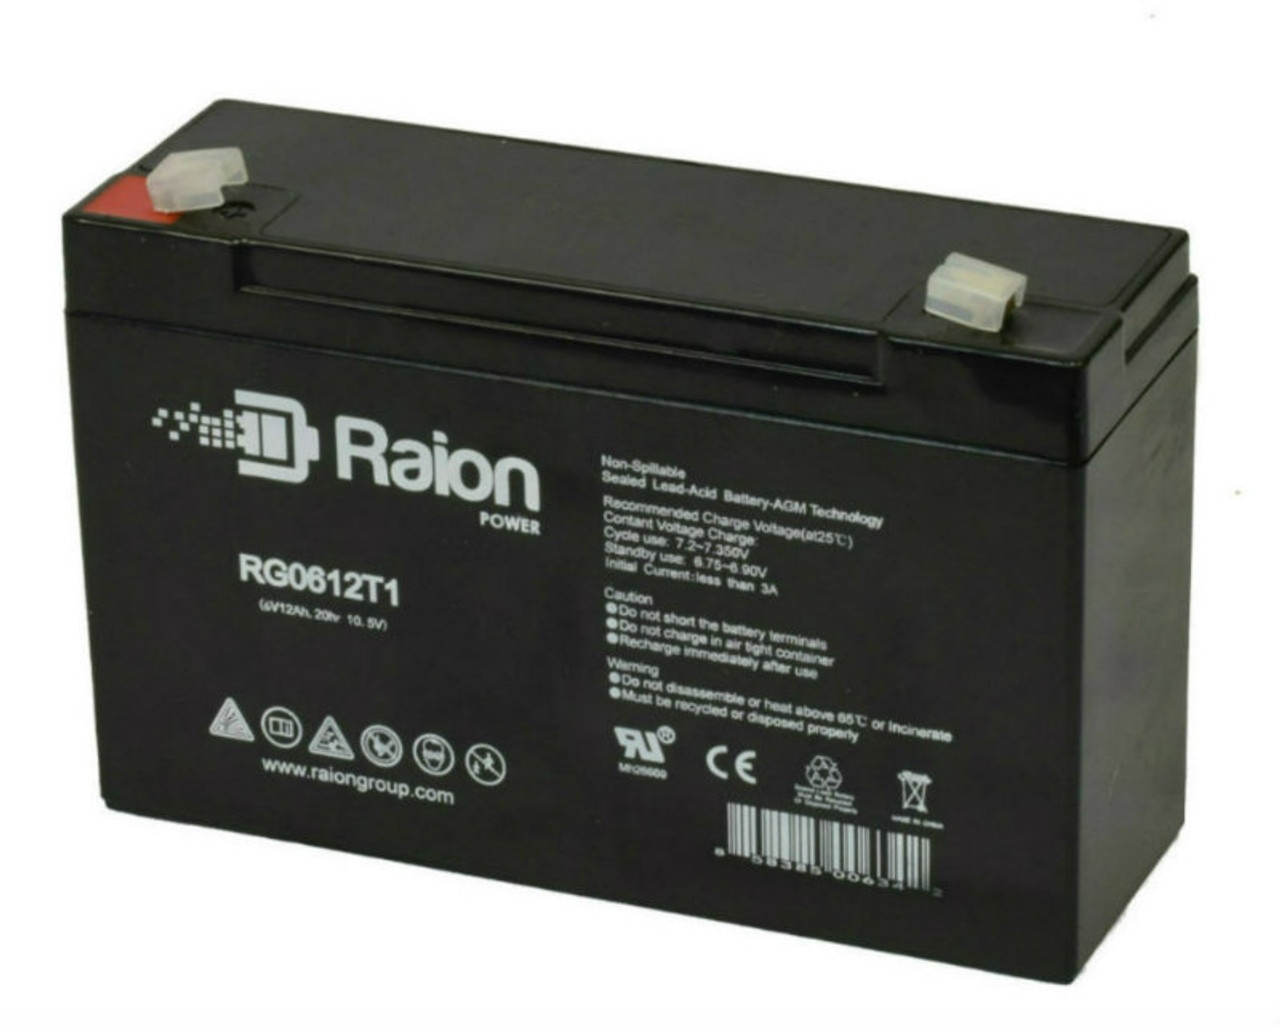 Raion Power RG06120T1 Replacement Battery Pack for Sure-Lites 1503 emergency light